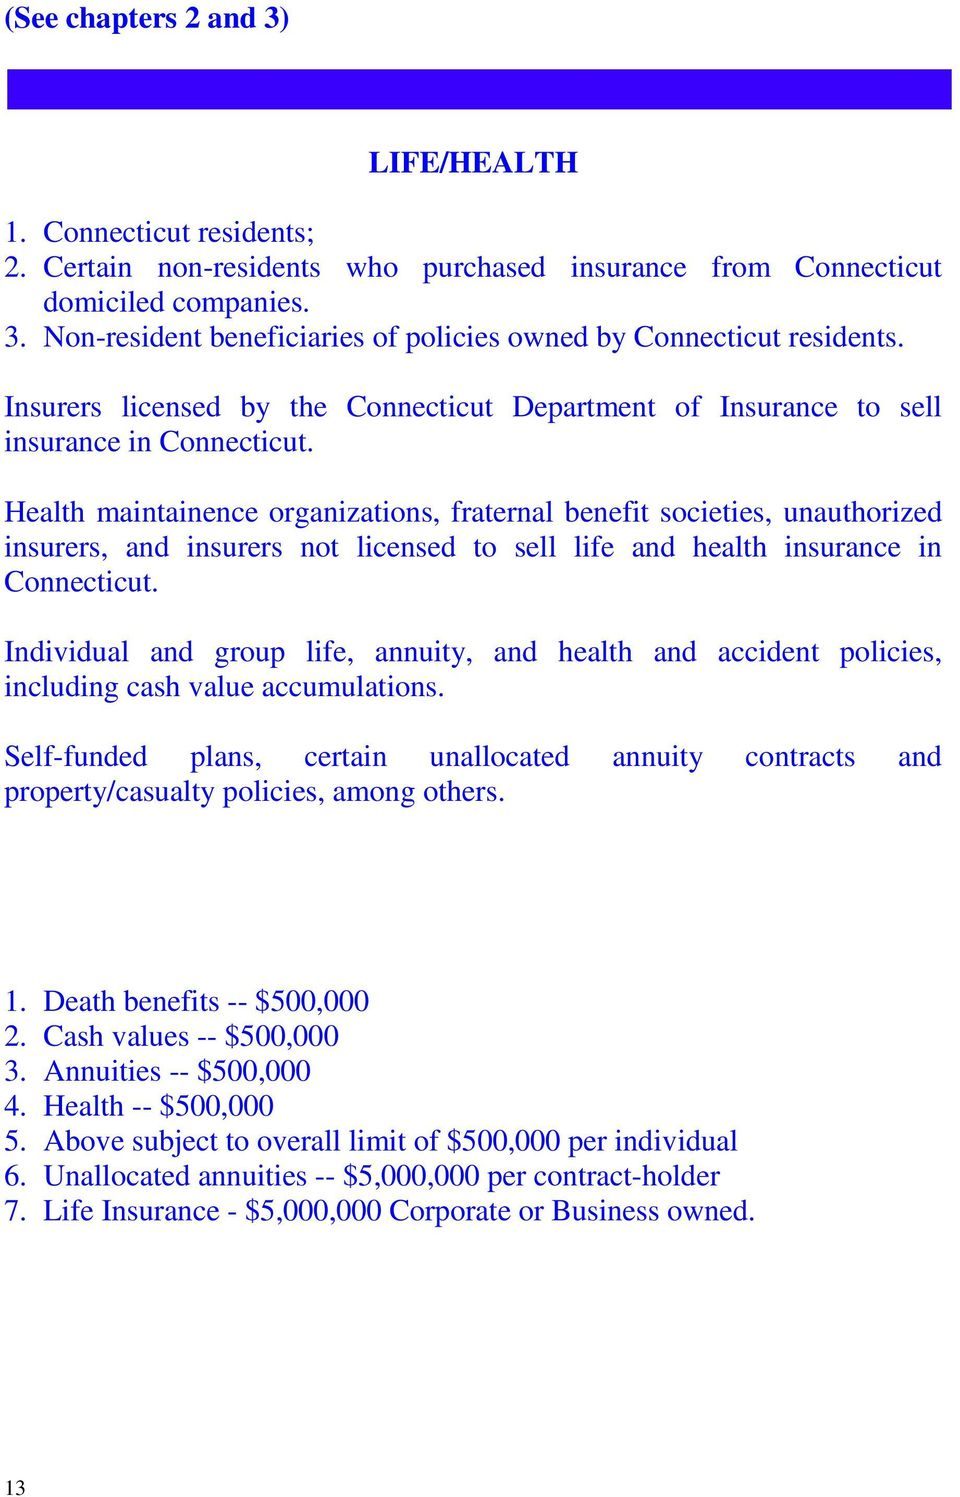 Health maintainence organizations, fraternal benefit societies, unauthorized insurers, and insurers not licensed to sell life and health insurance in Connecticut.